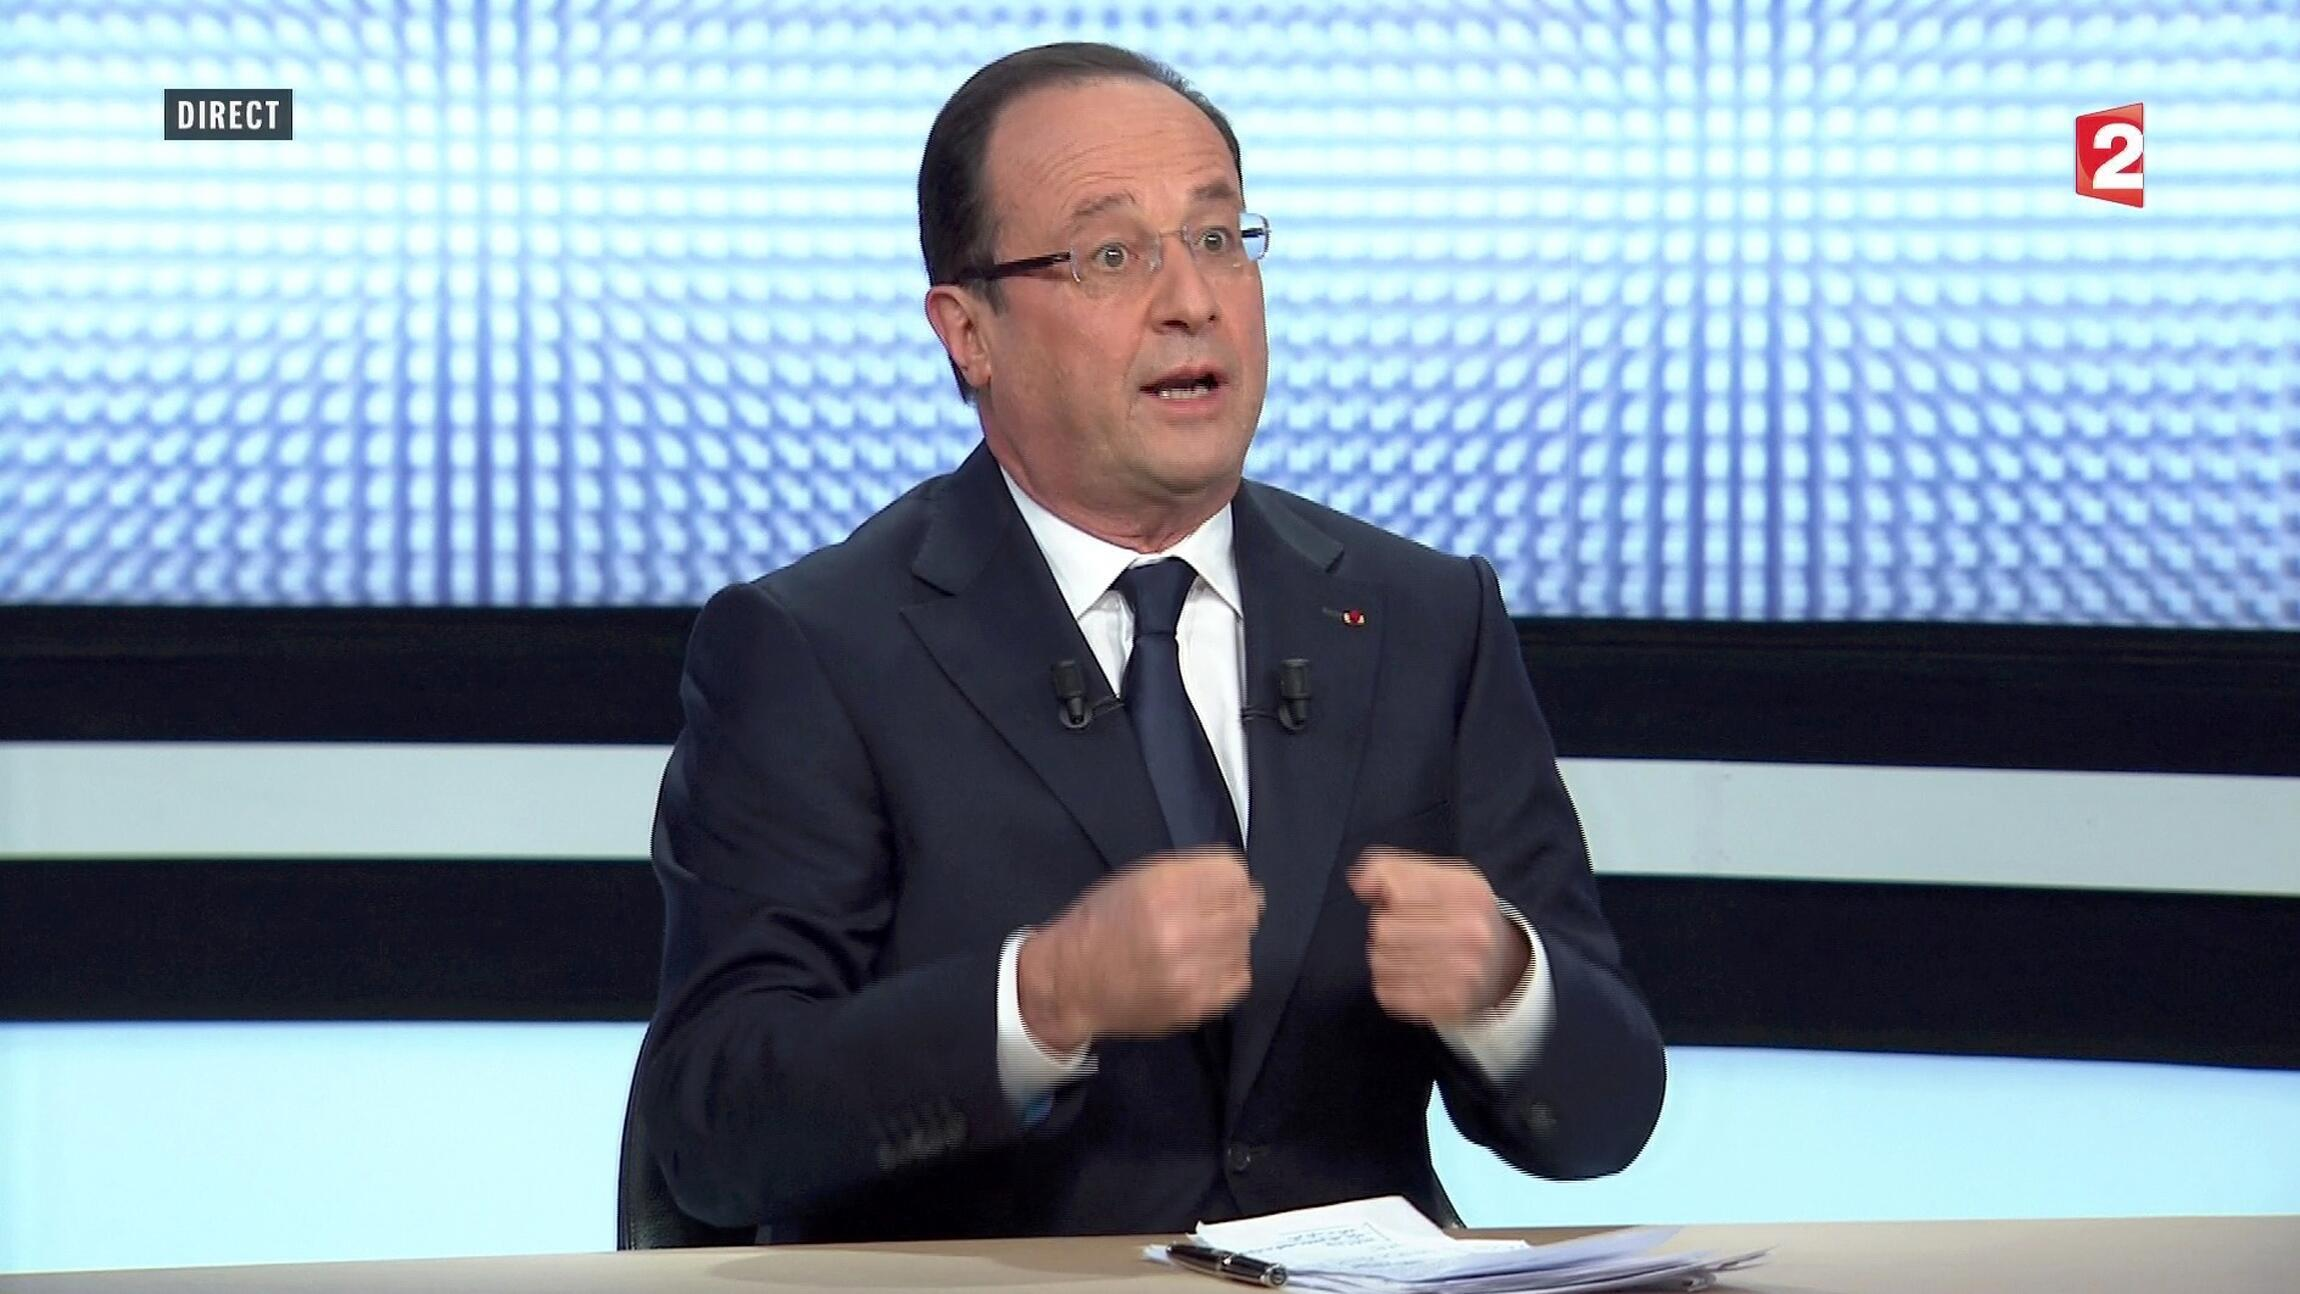 François Hollande has promised to bring down unemployment by the end of this year